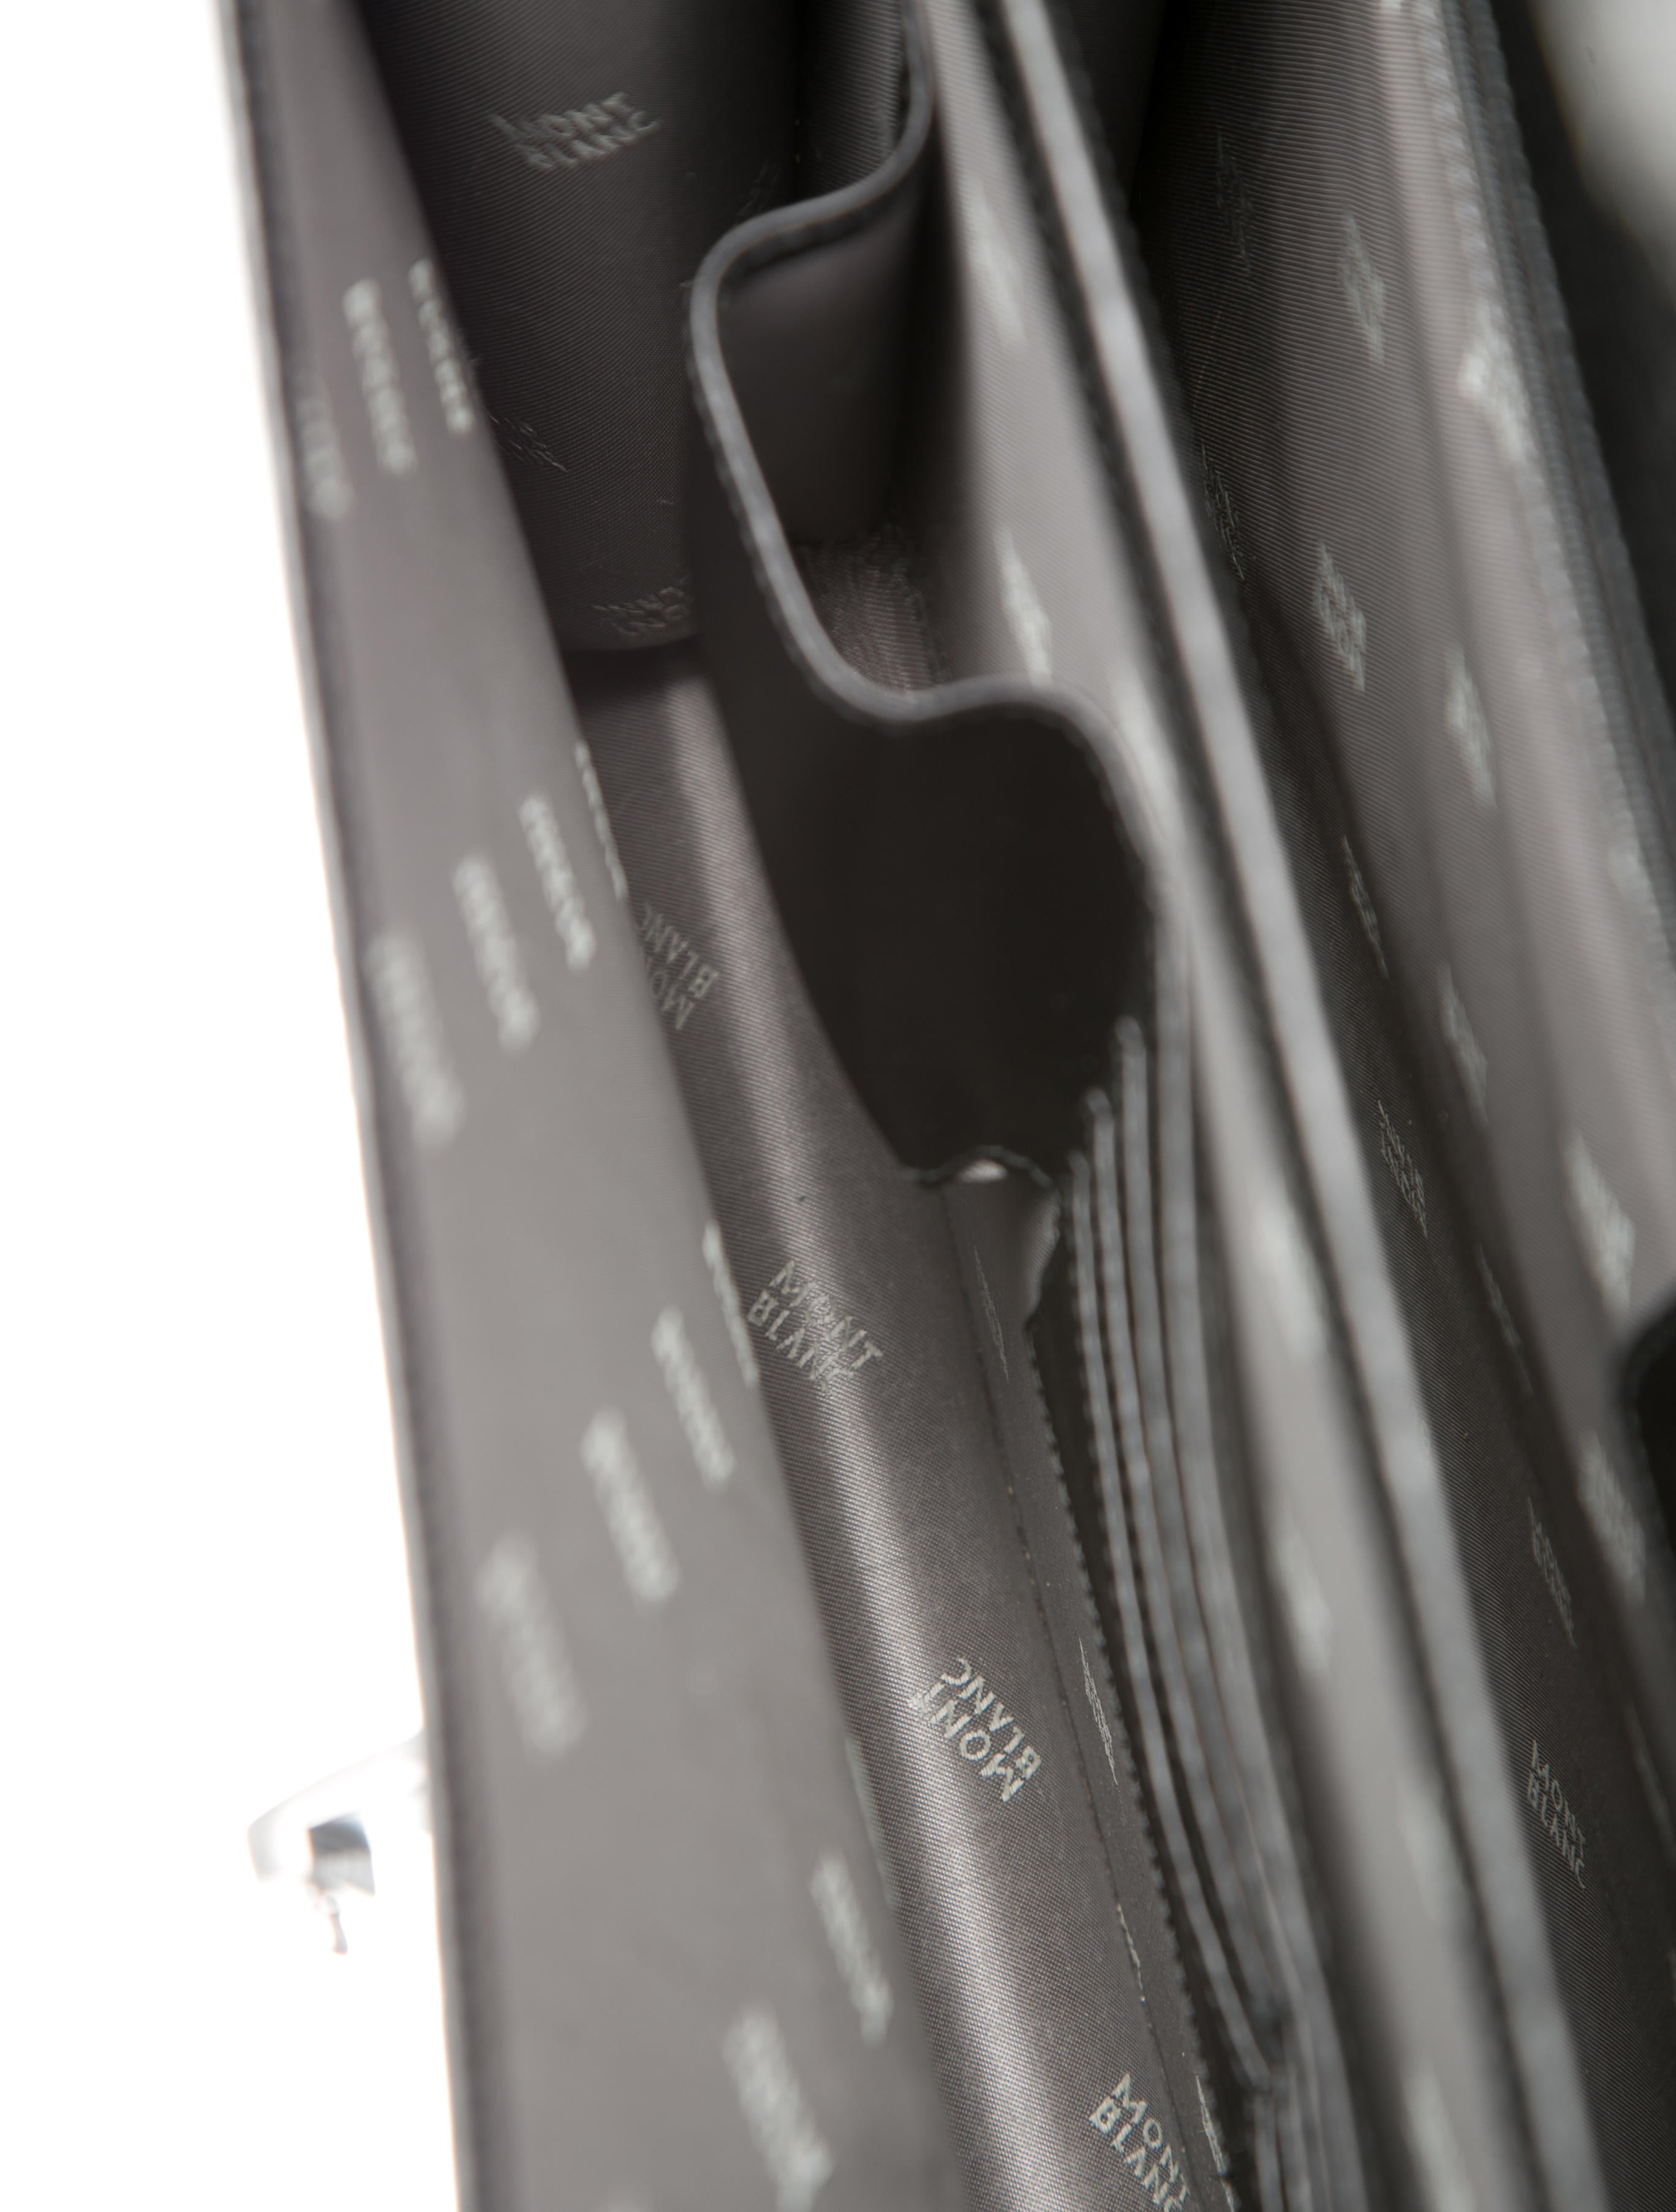 Montblanc Westside Double Gusset Briefcase Bags  : MBL208815enlarged from www.therealreal.com size 2736 x 3610 jpeg 541kB